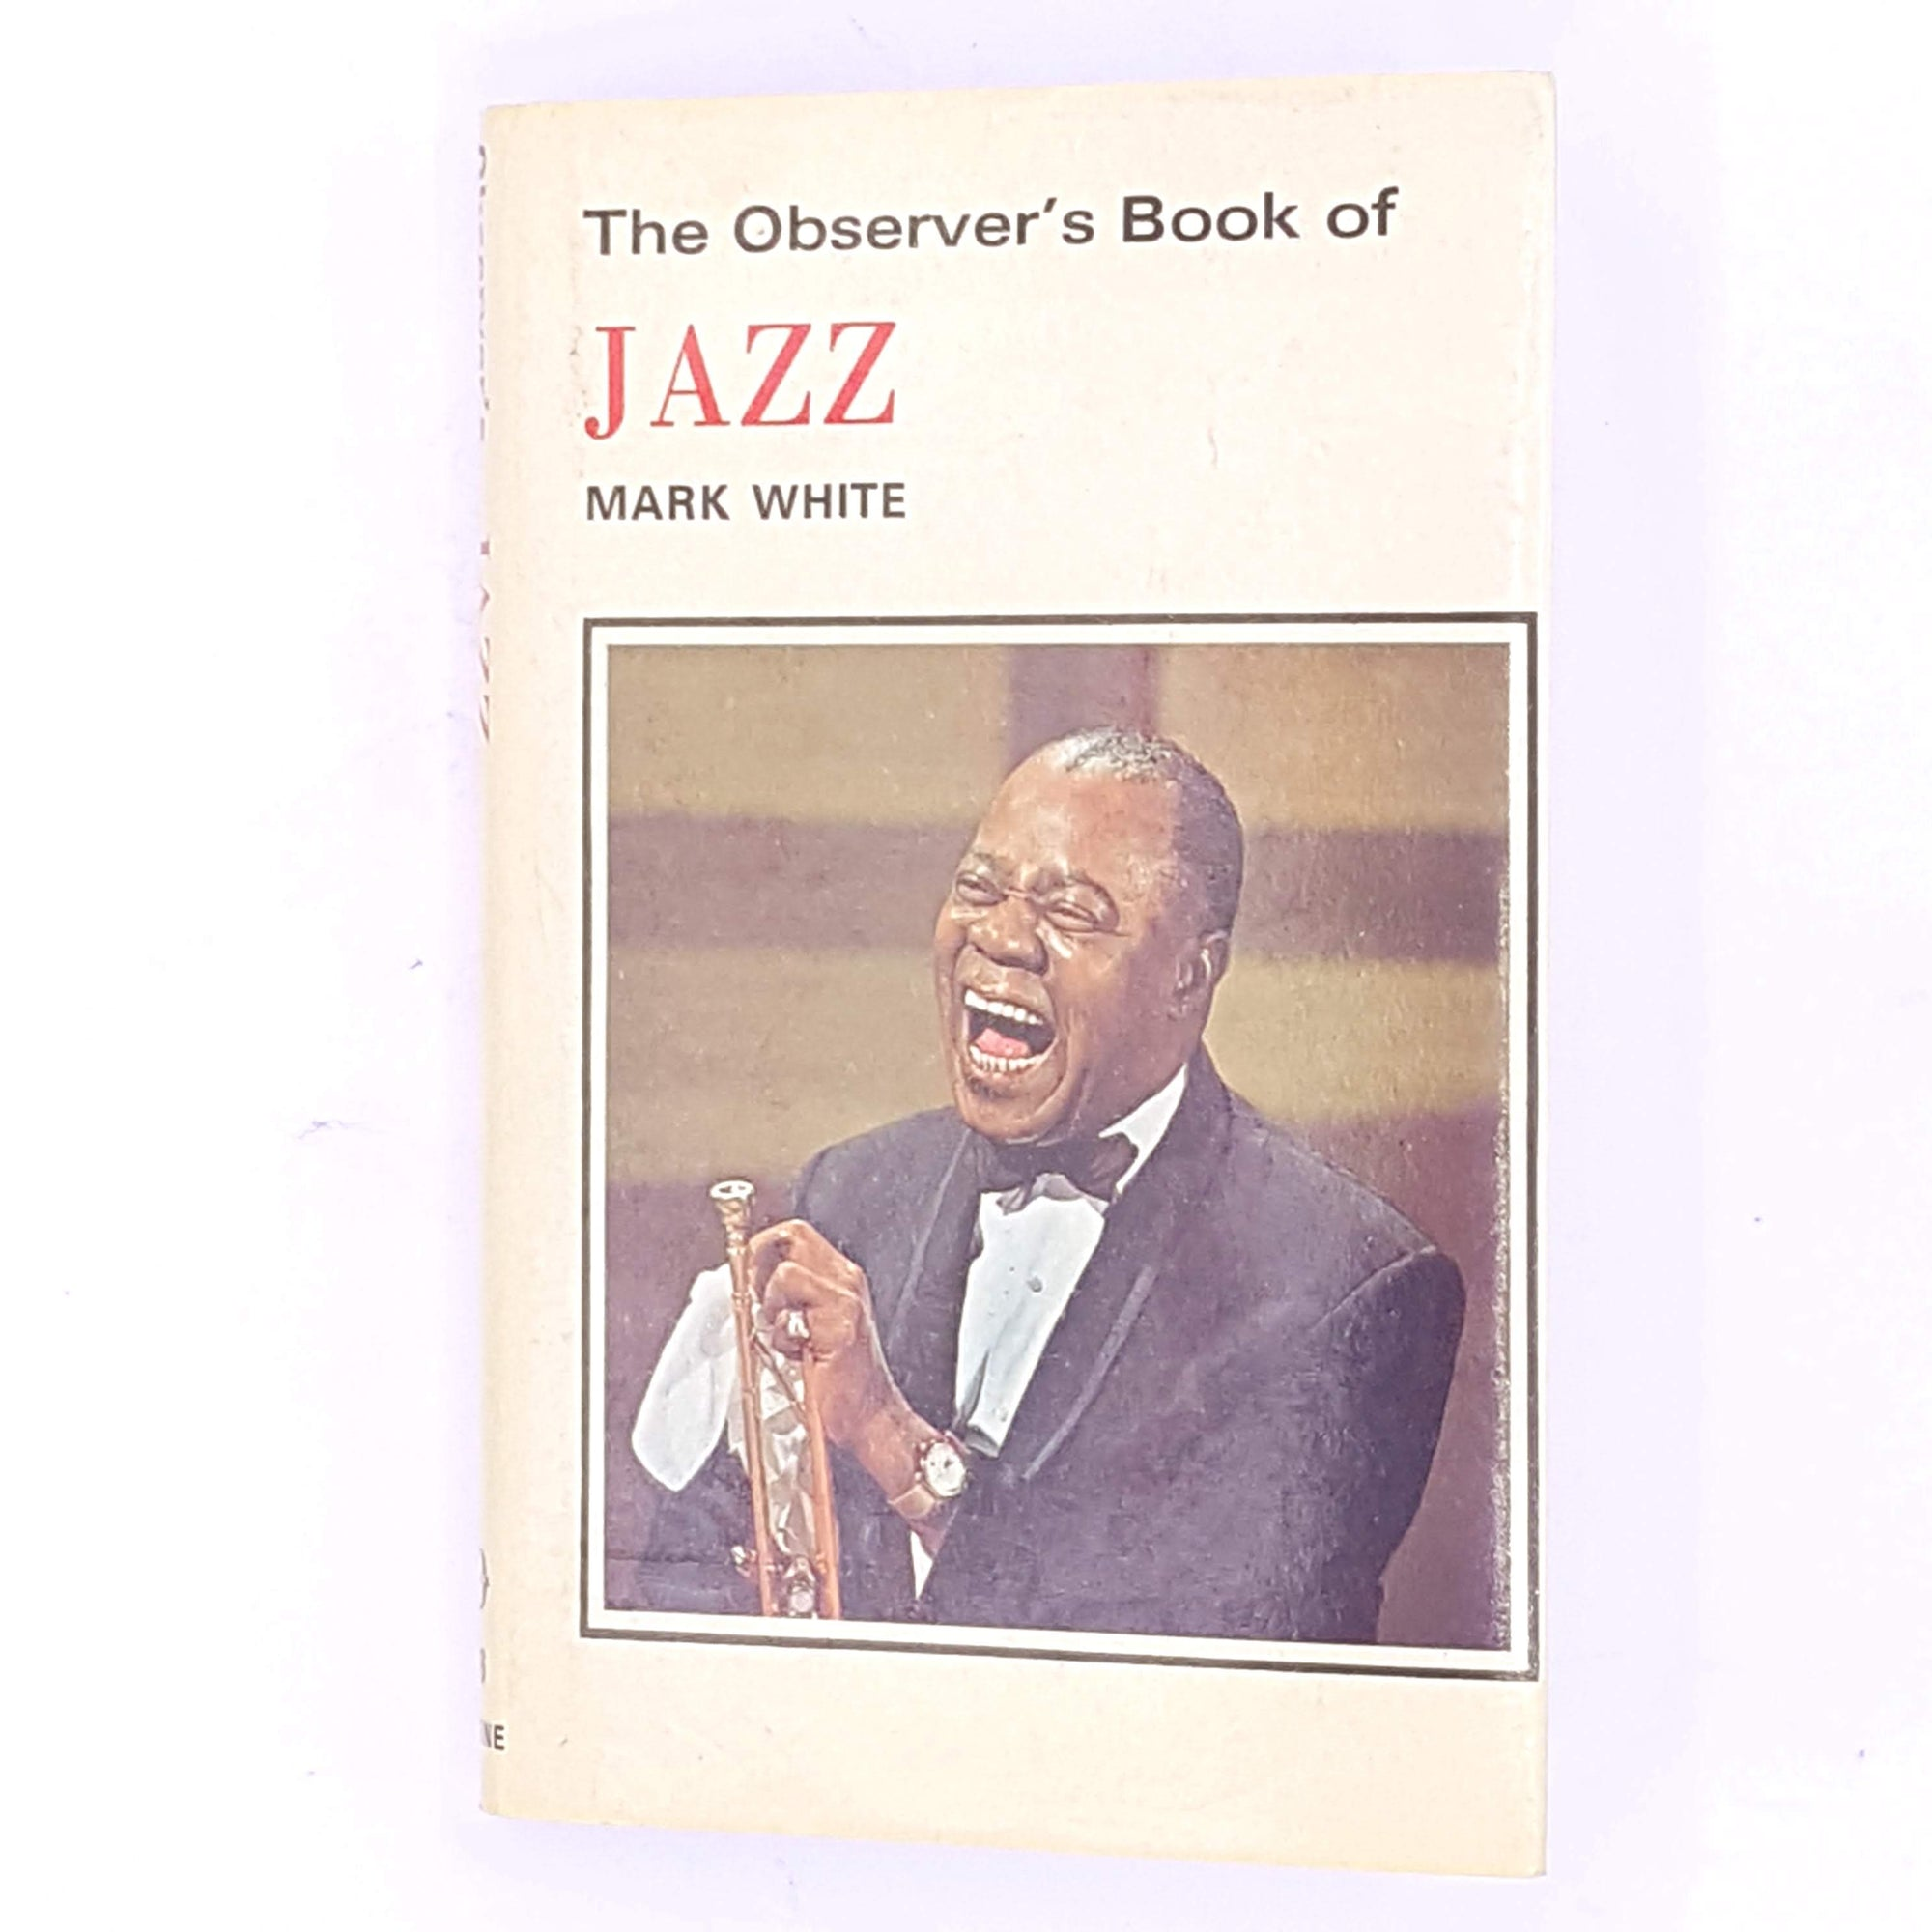 jazz-sport-christmas-gifts-classic-thrift-decorative-musician- old-books-patterned-for-him-antique-music-country-house-library-vintage-